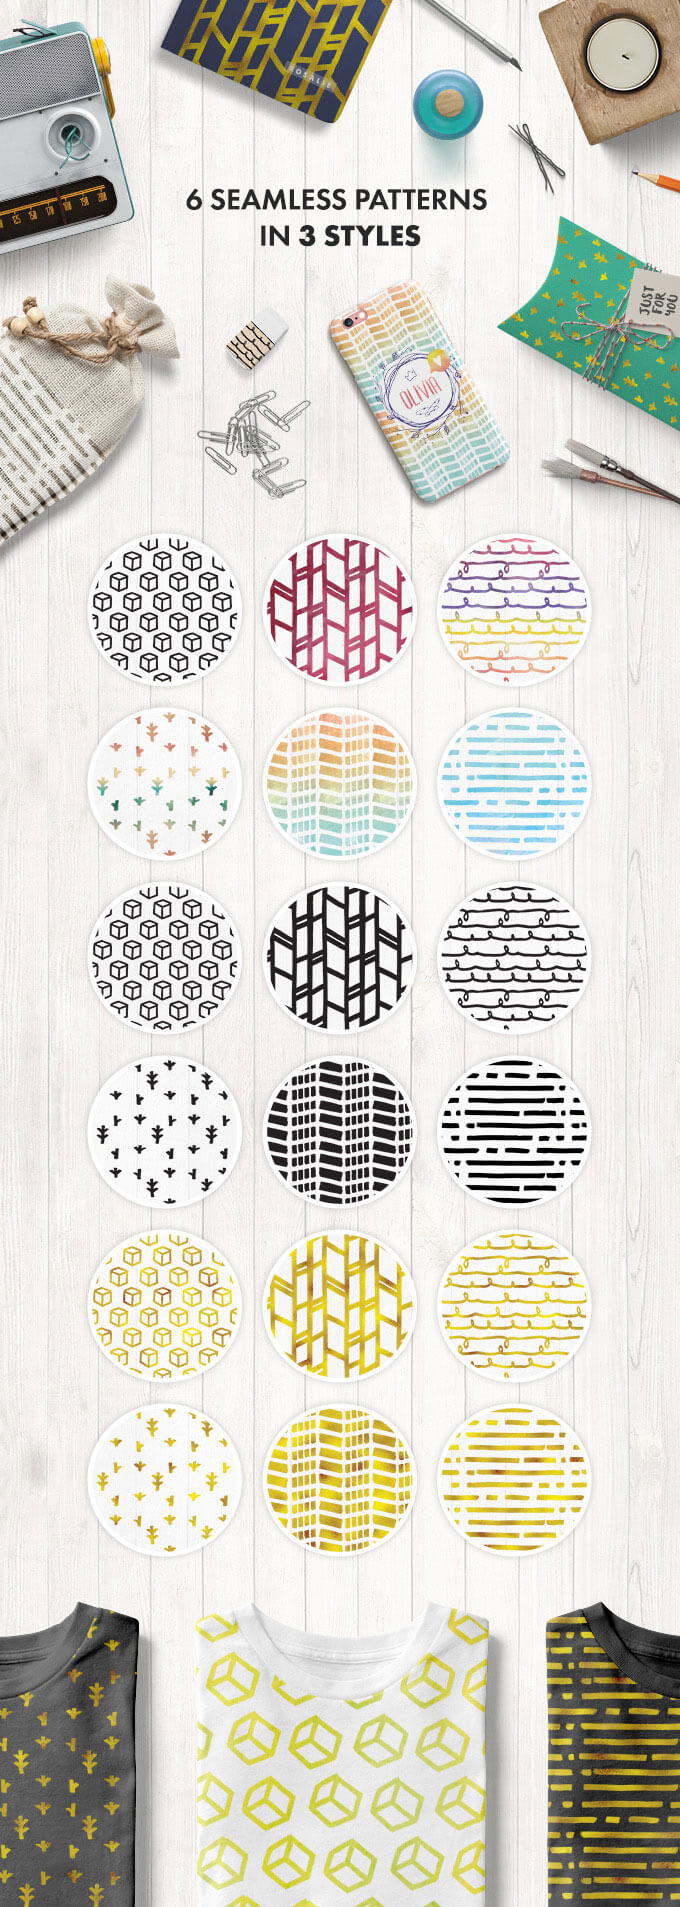 6-semaless-patterns-in-3-styles